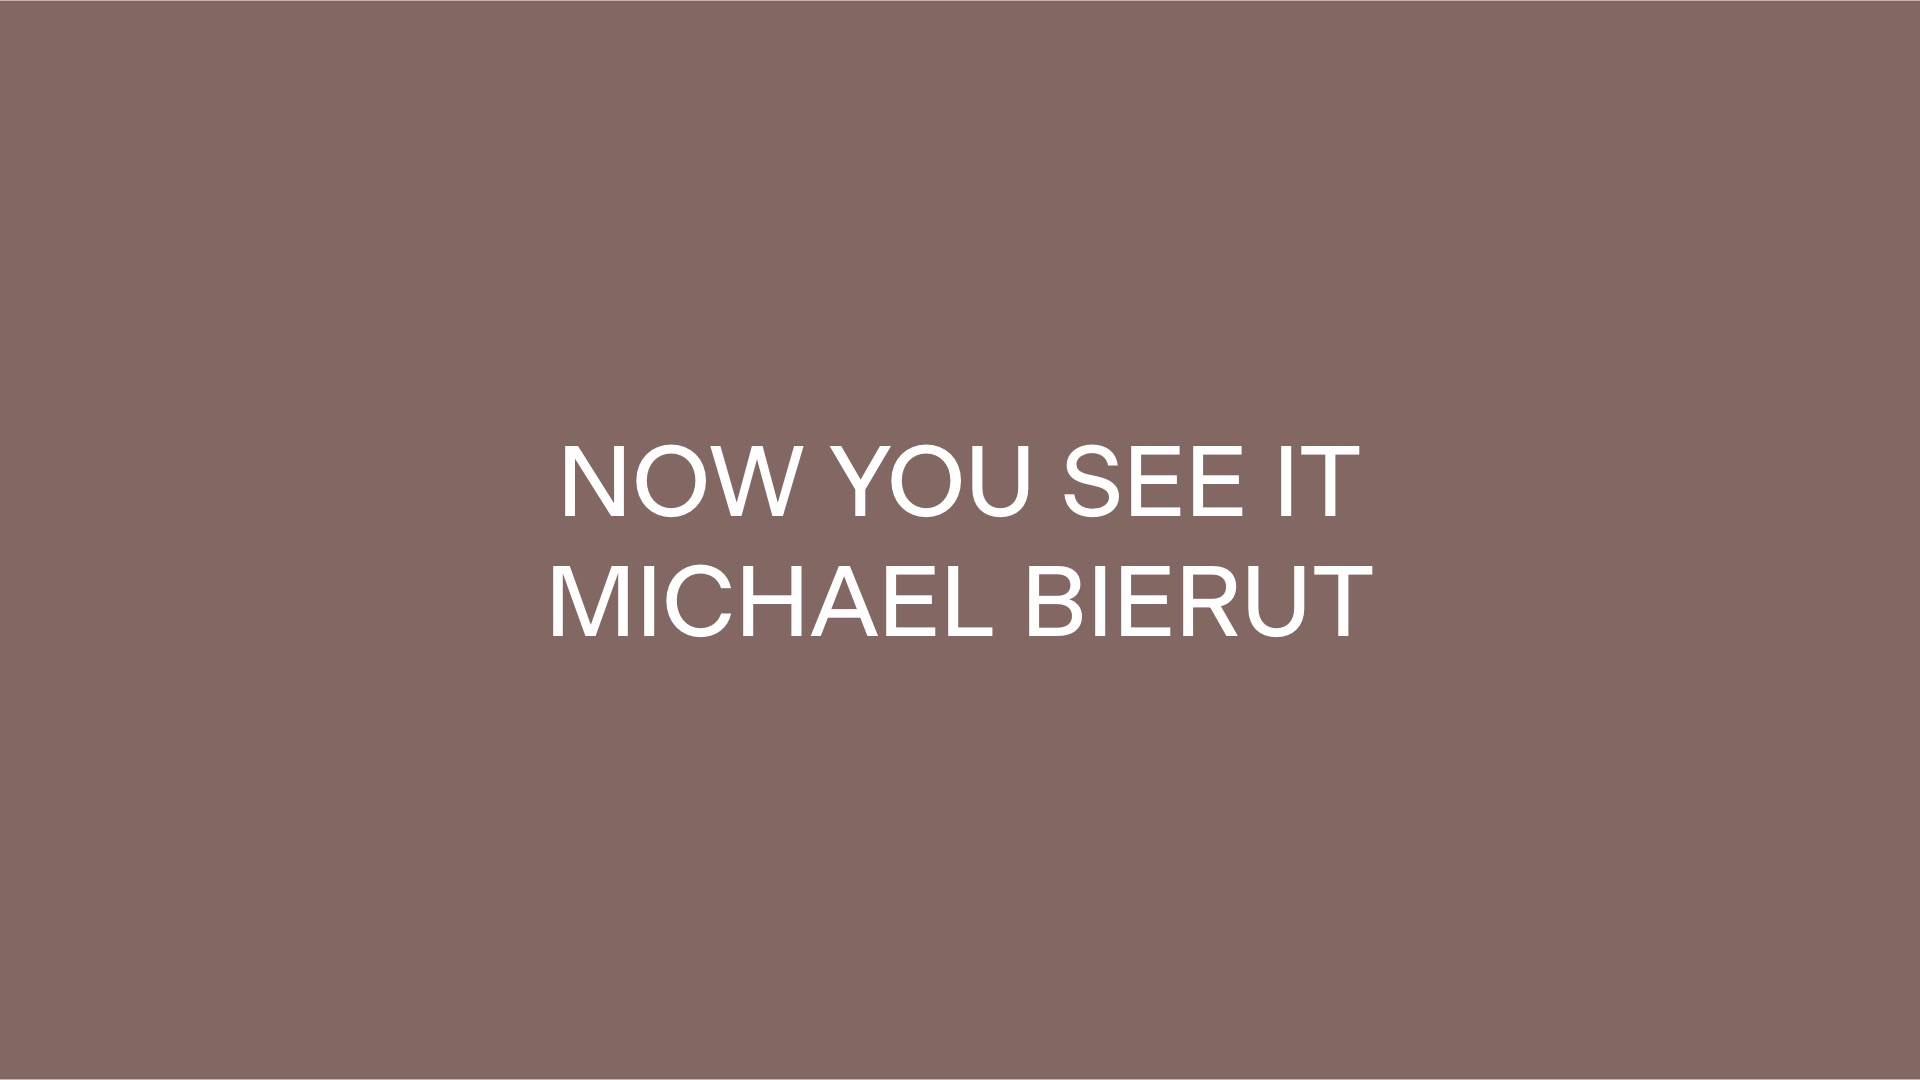 Now You See It by Michael Bierut